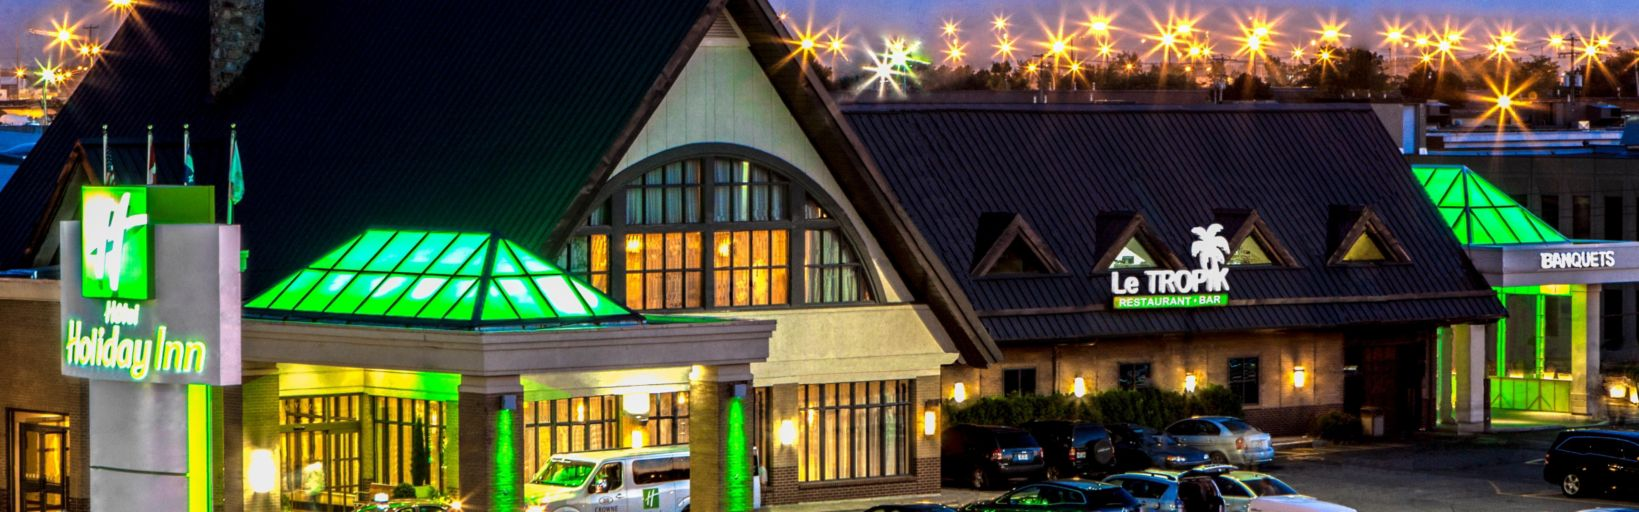 Holiday inn montreal aeroport airport hotel by ihg day or night the holiday inn montreal airport is waiting for you solutioingenieria Image collections